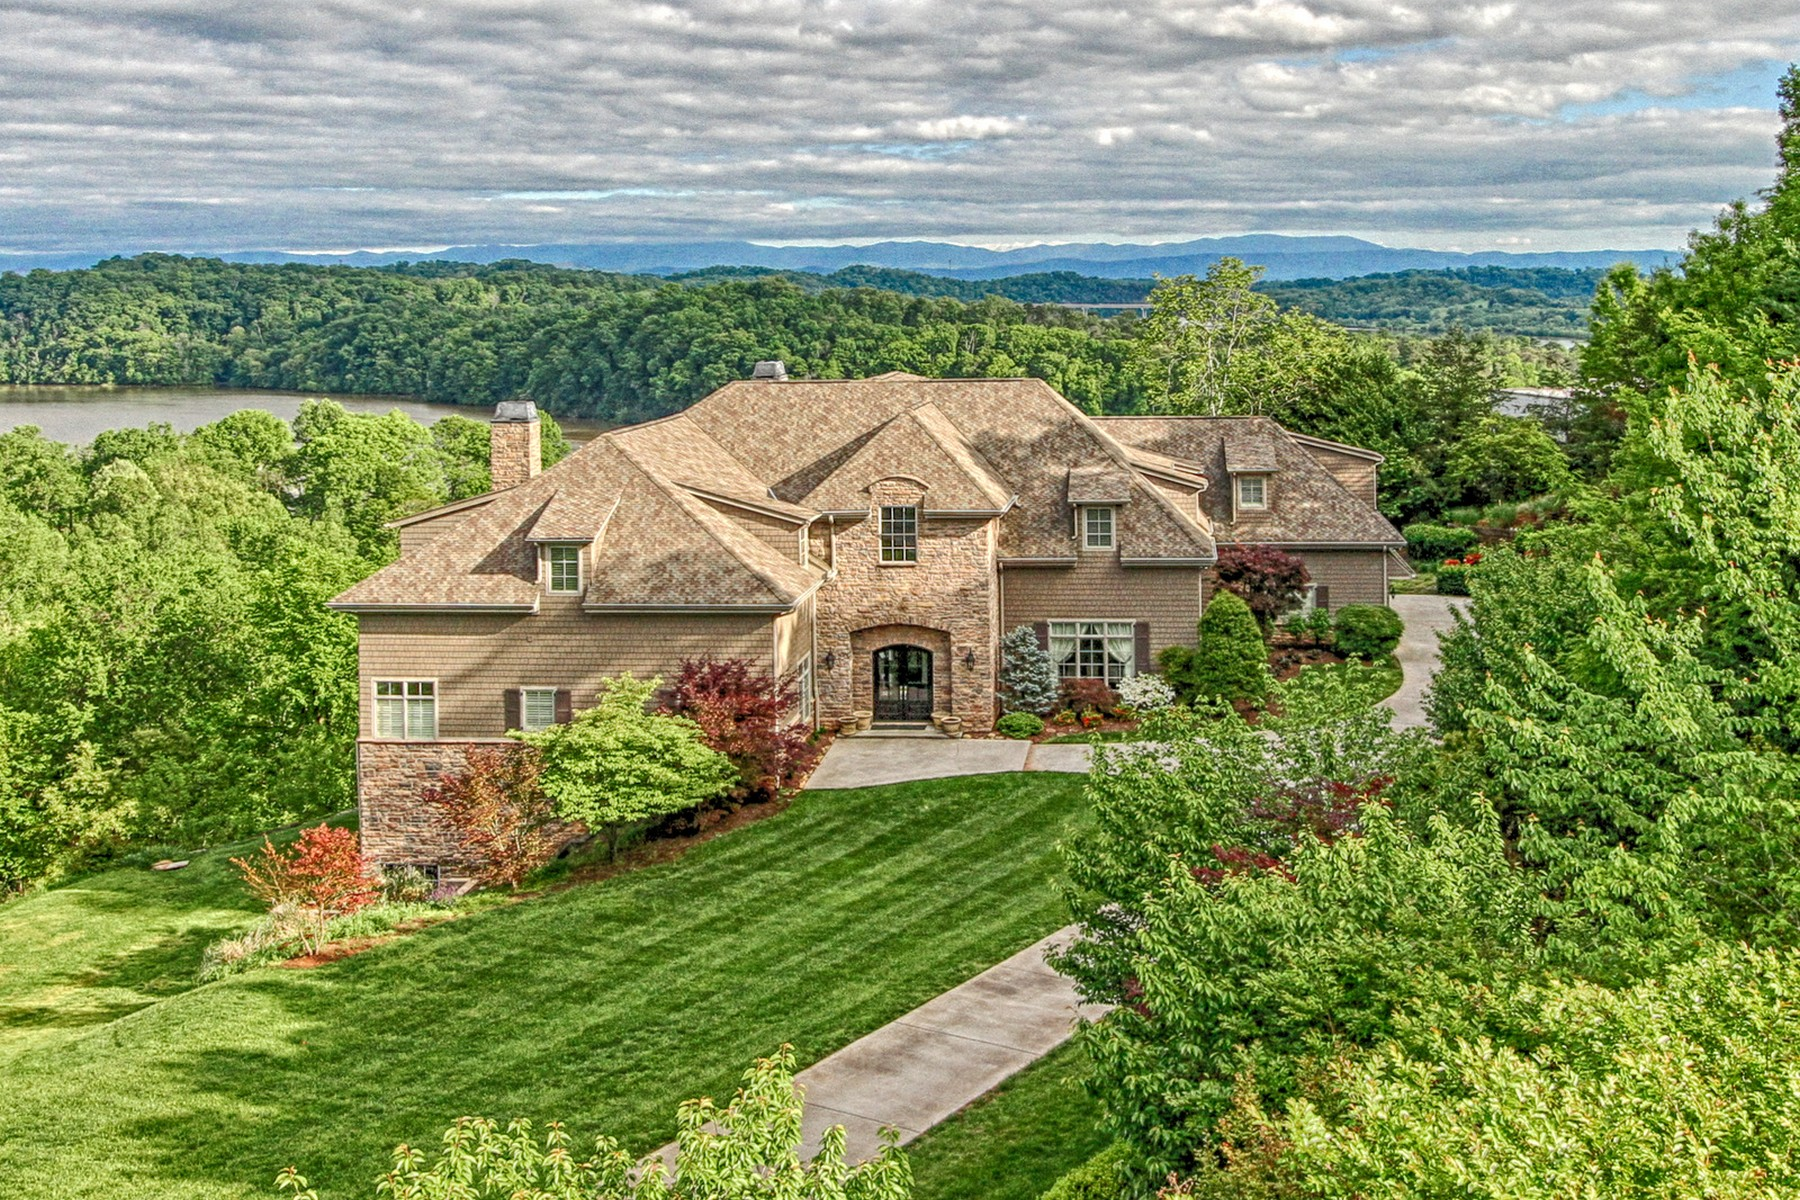 Single Family Home for Sale at Stunningly Elegant Estate 1928 Rudder Lane Knoxville, Tennessee 37917 United States